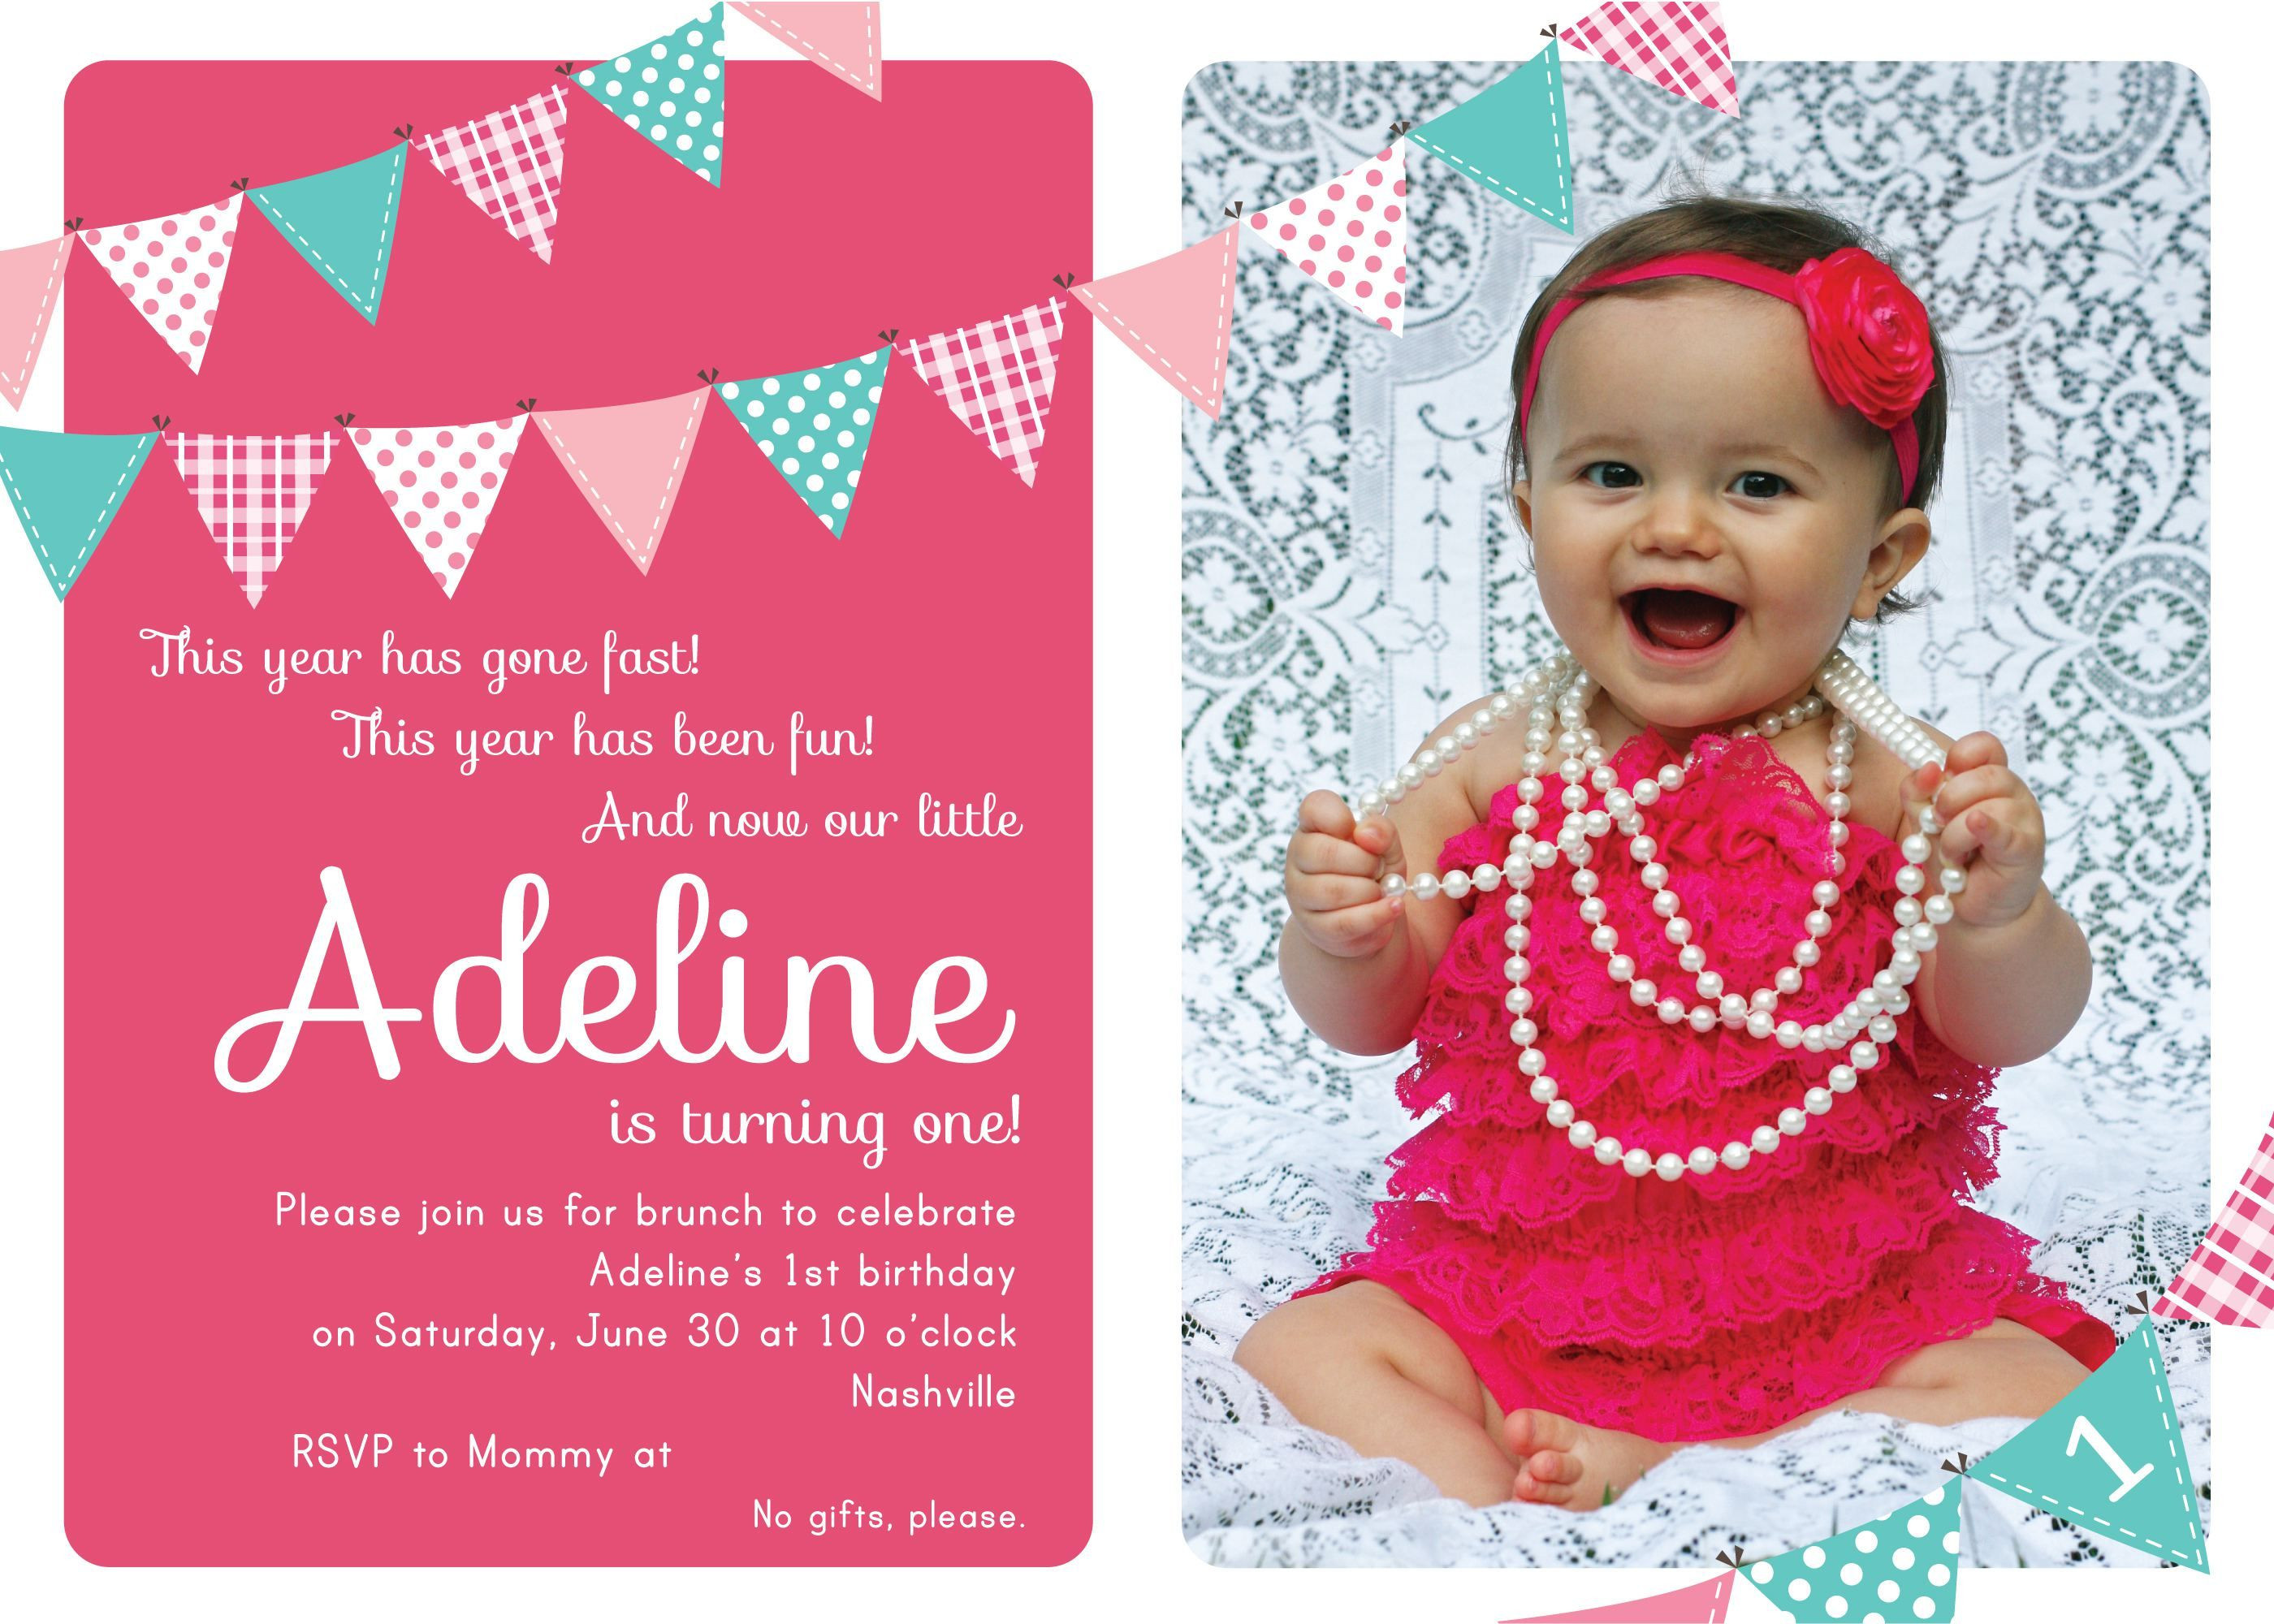 Best ideas about Baptism Birthday Invitations . Save or Pin baptism invitation sample wording Now.